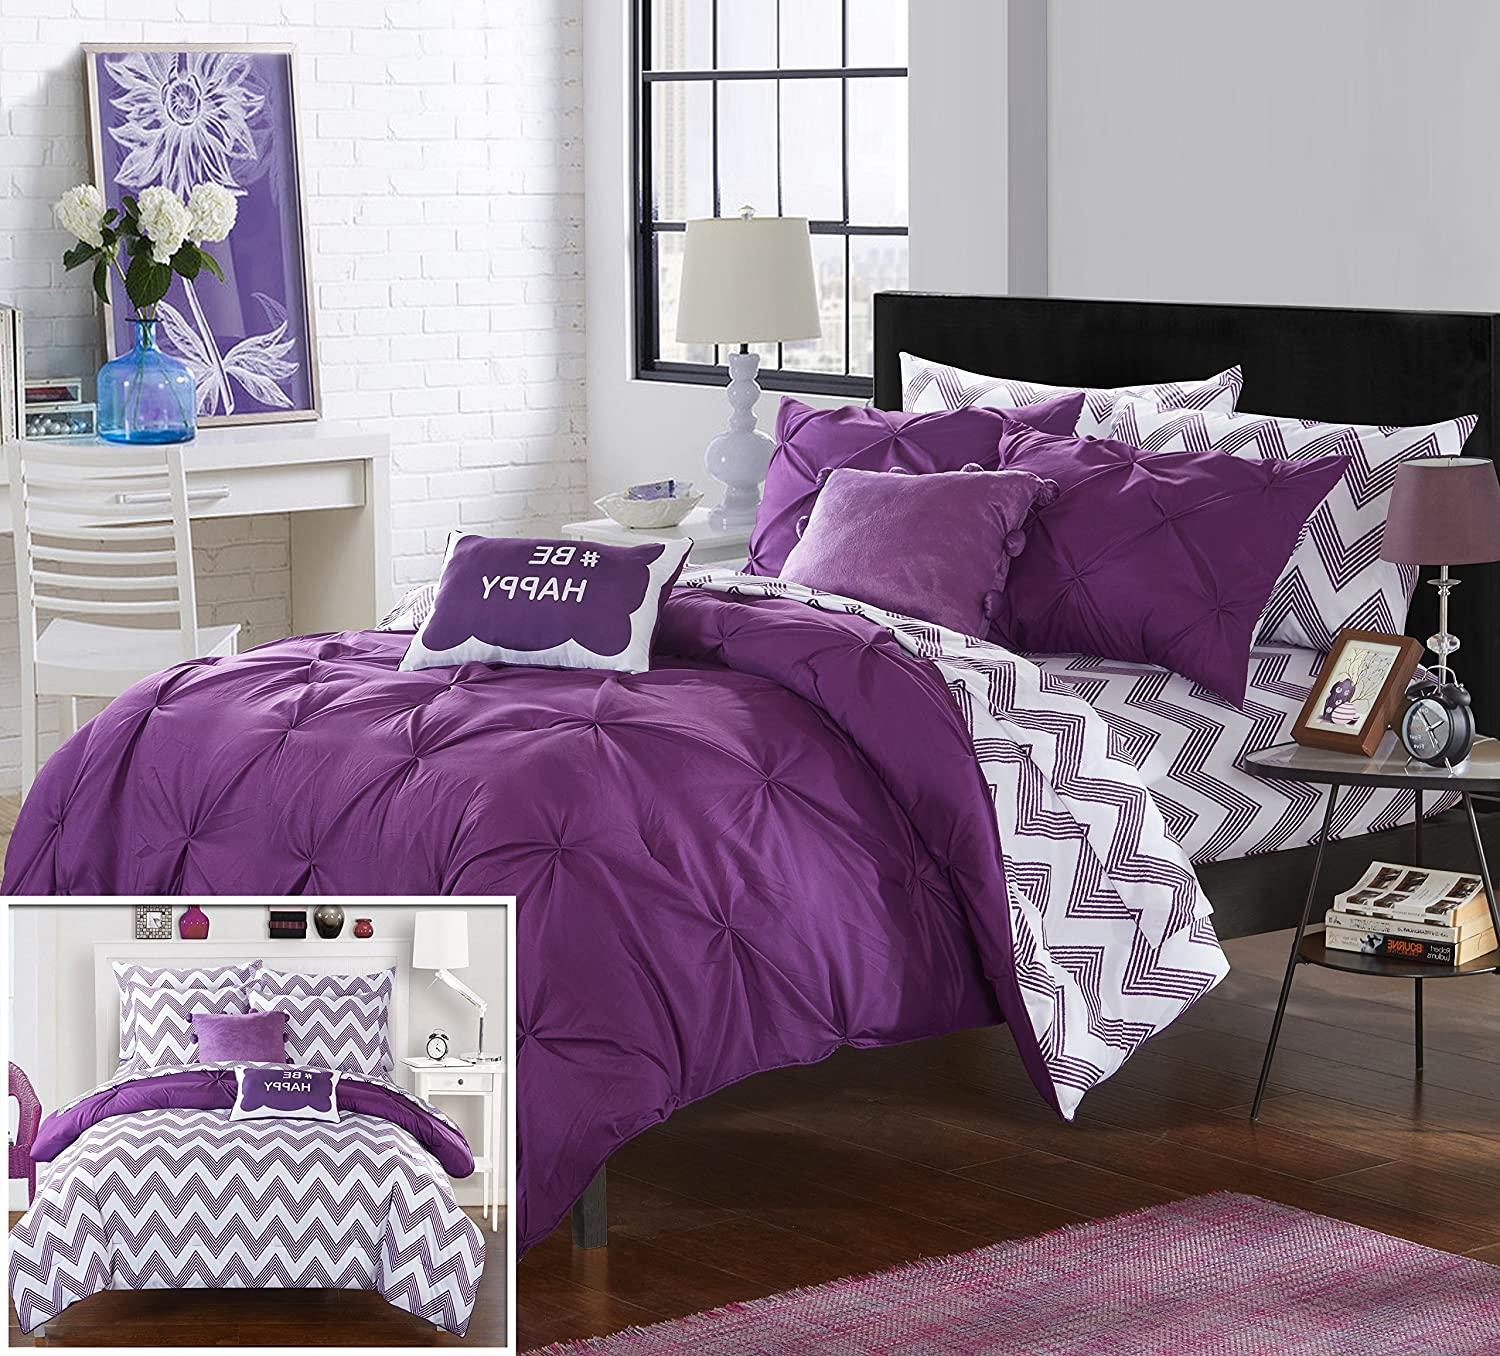 white comforter bedroom dreaded california of sets purple uncategorized cotton light solid quilt plum incredible super grey cover duvets bedding full sheets dark twin picture king covers black lilac size duvet and exceptional deep pictures pretty